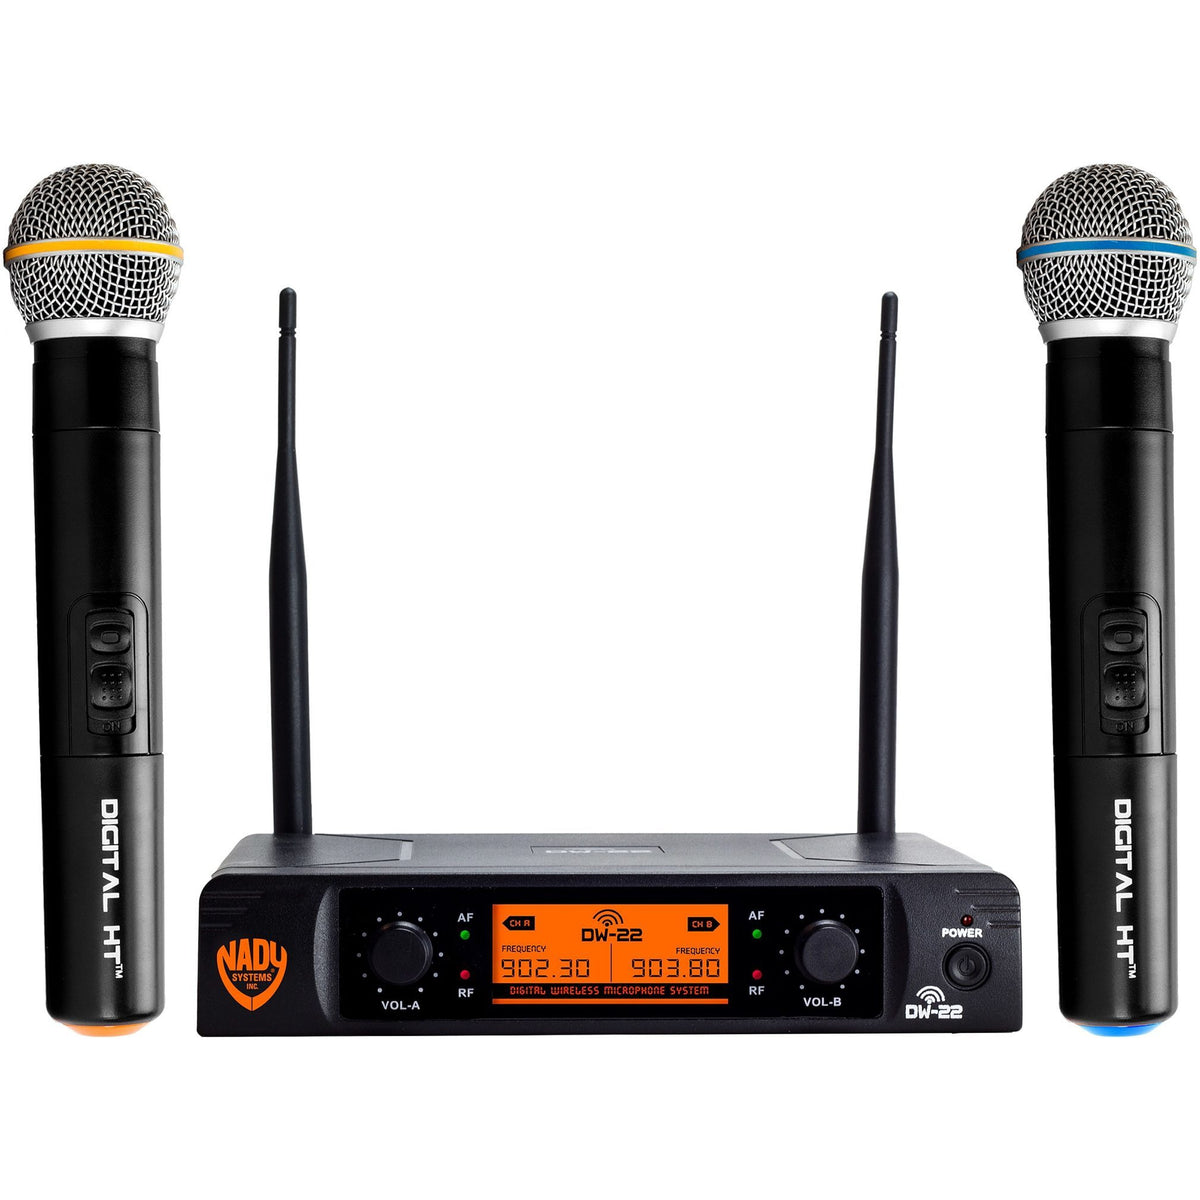 Nady DW-22 Dual Transmitter Digital Wireless Vocal Microphone System, Channel D-13 and D-14